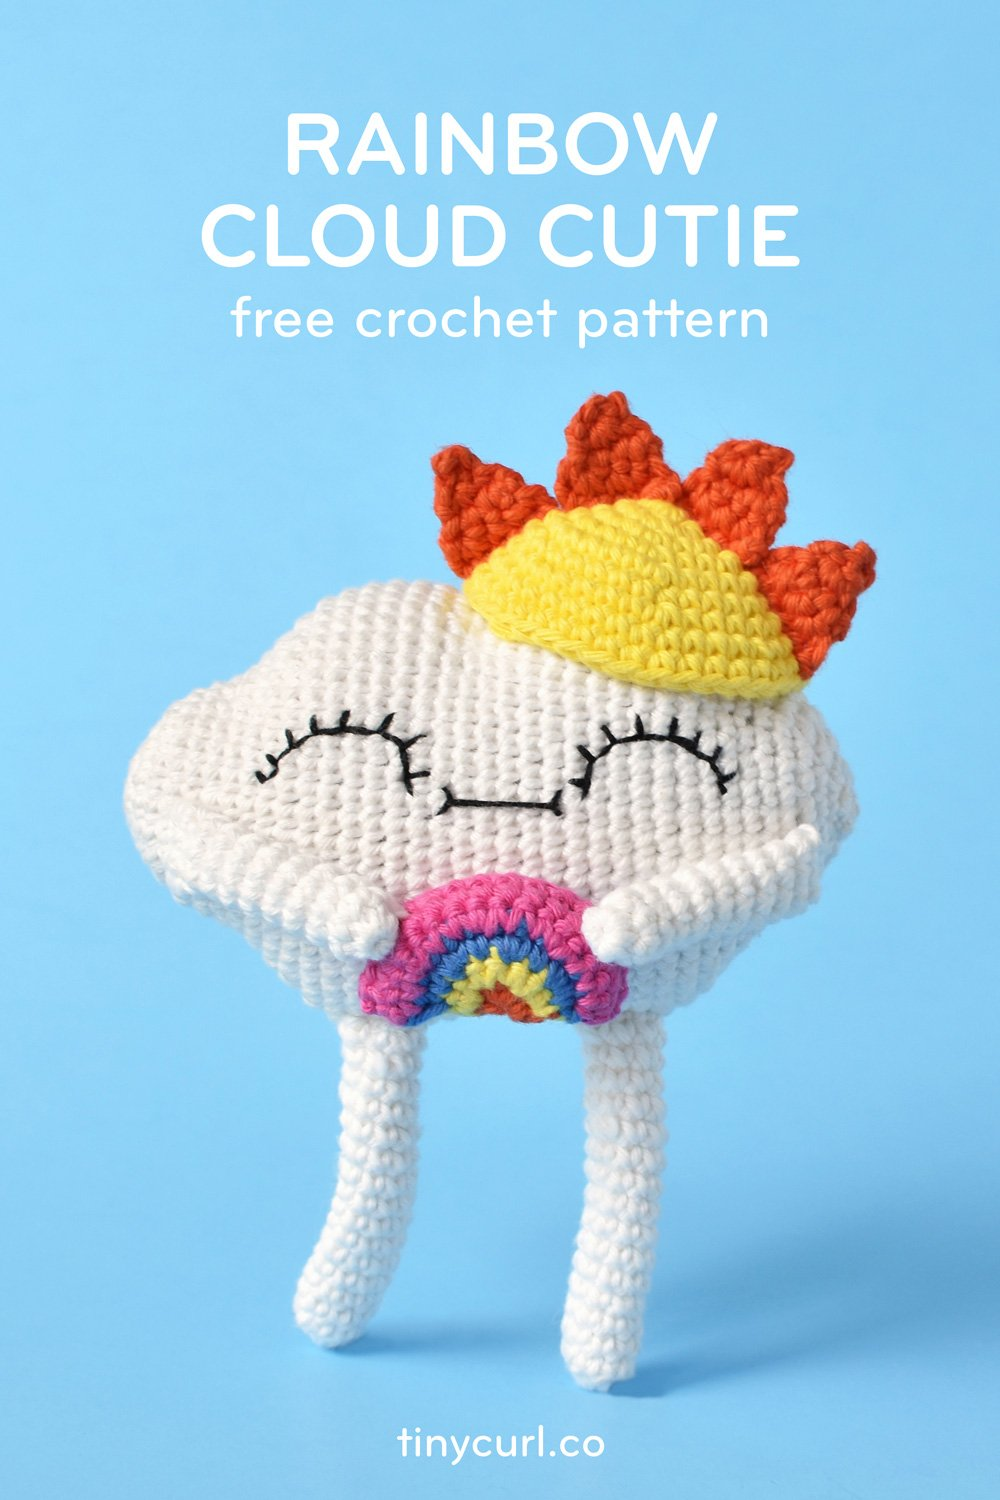 Finished amigurumi Rainbow Cloud Cutie doll at center stage for this poster. This is the main poster for the free crochet pattern.